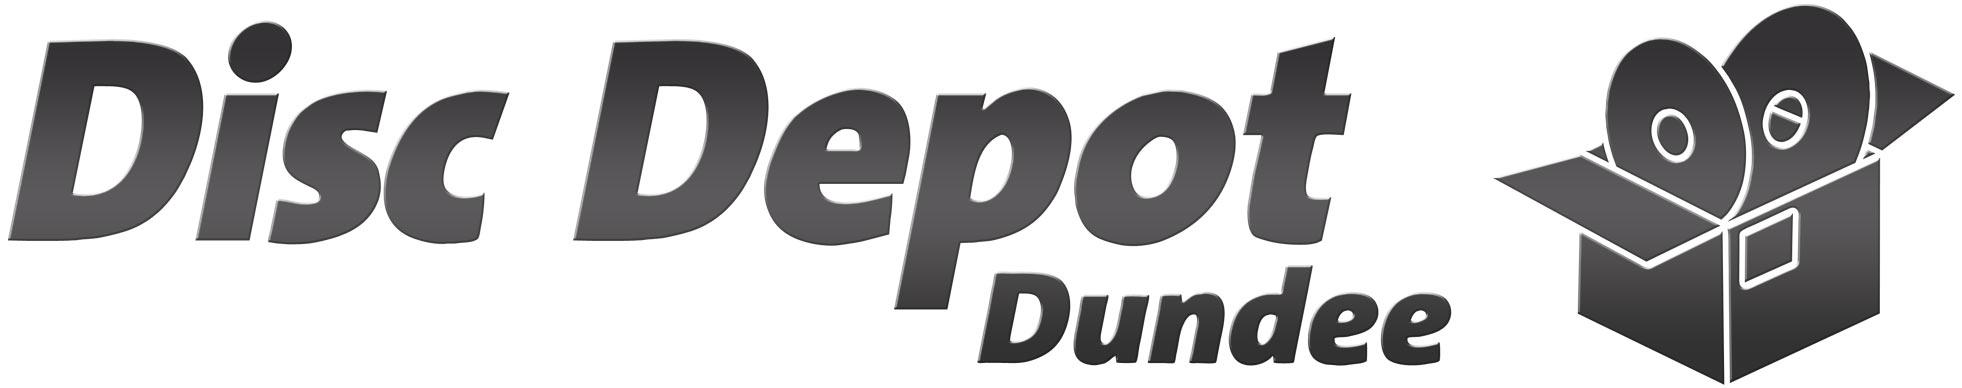 Disc Depot Computer Repair and Supplies - Now Open in St